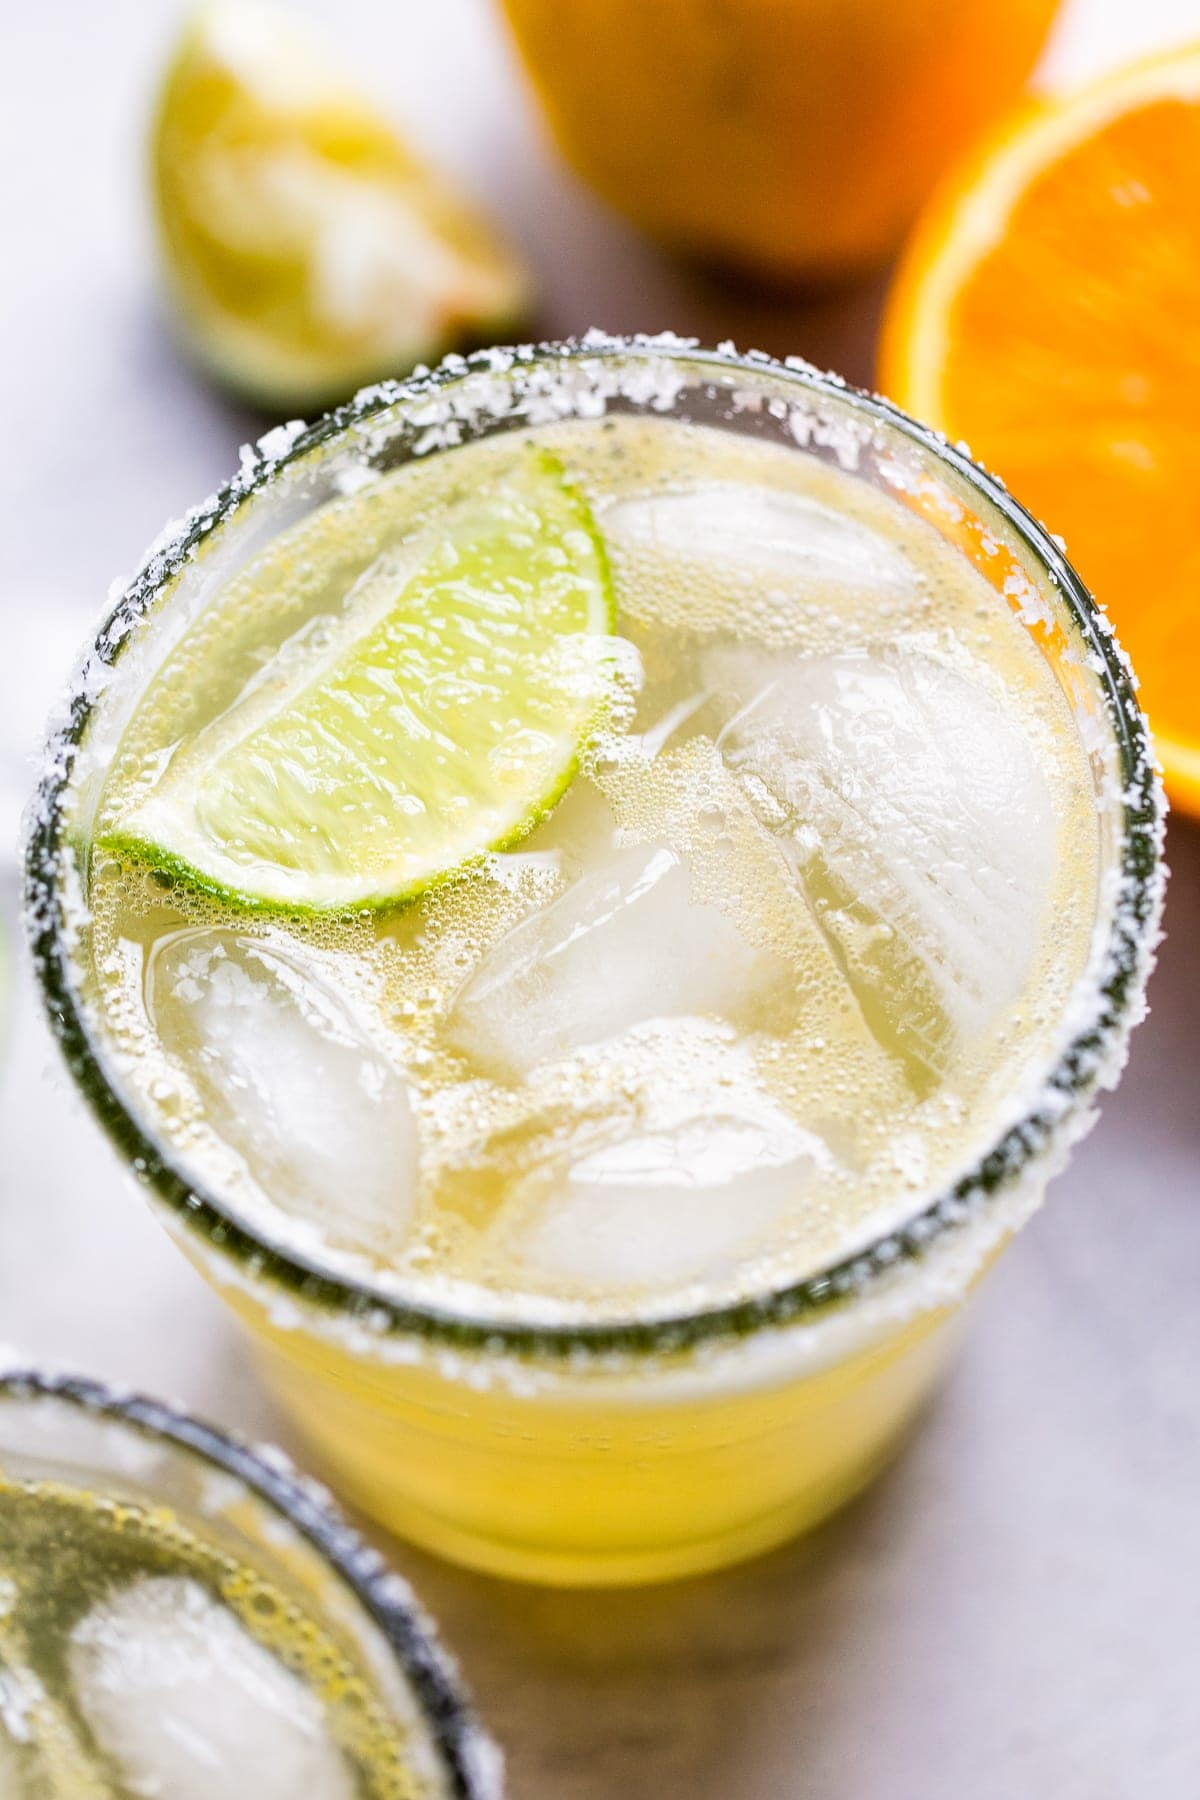 A classic virgin margarita cocktail in a glass with ice and a lime wedge.